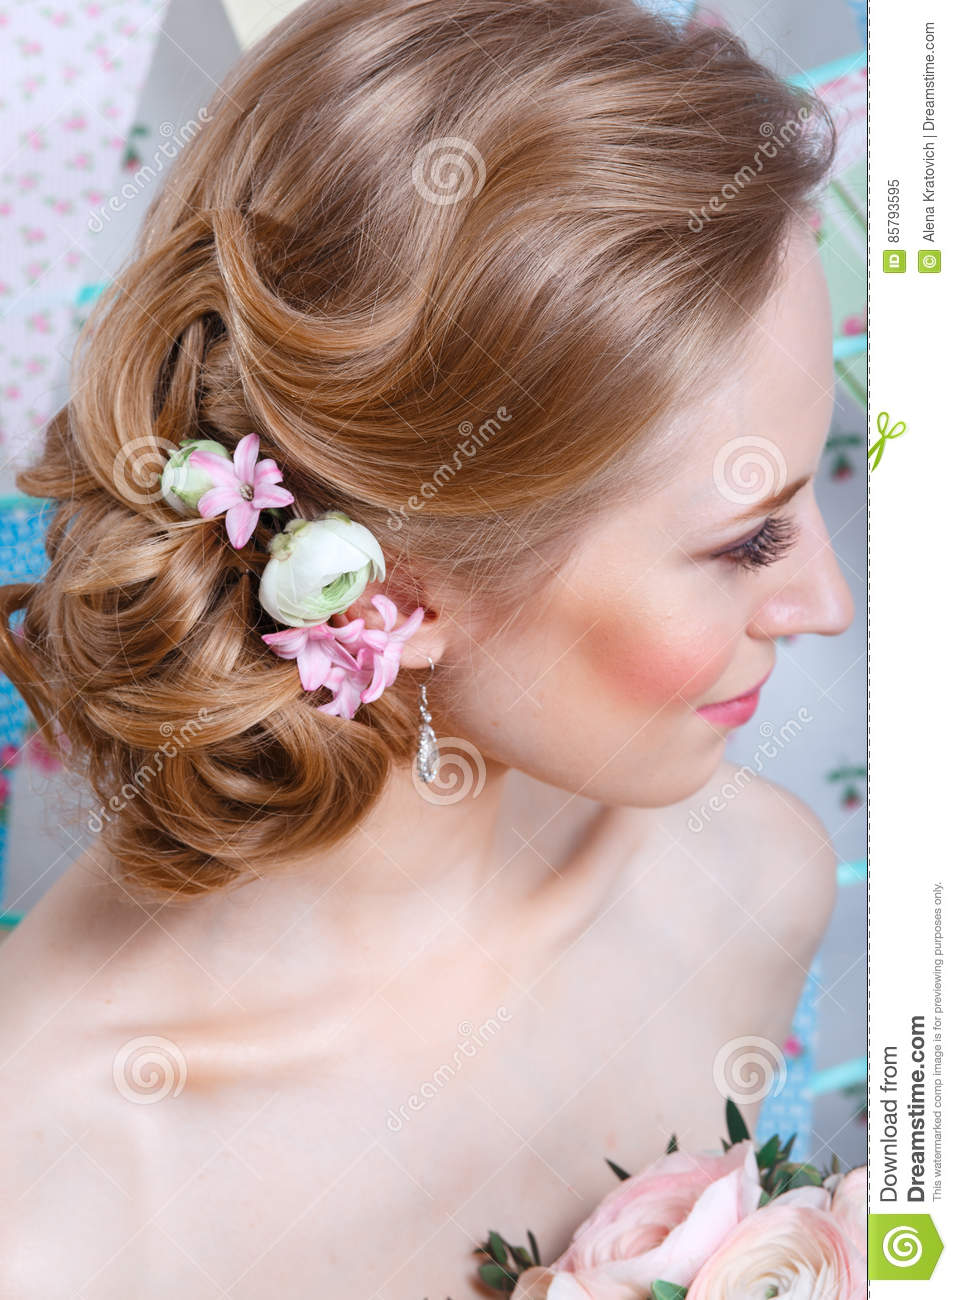 Brideyoung Fashion Model With Make Up Curly Hair Flowers In Hair